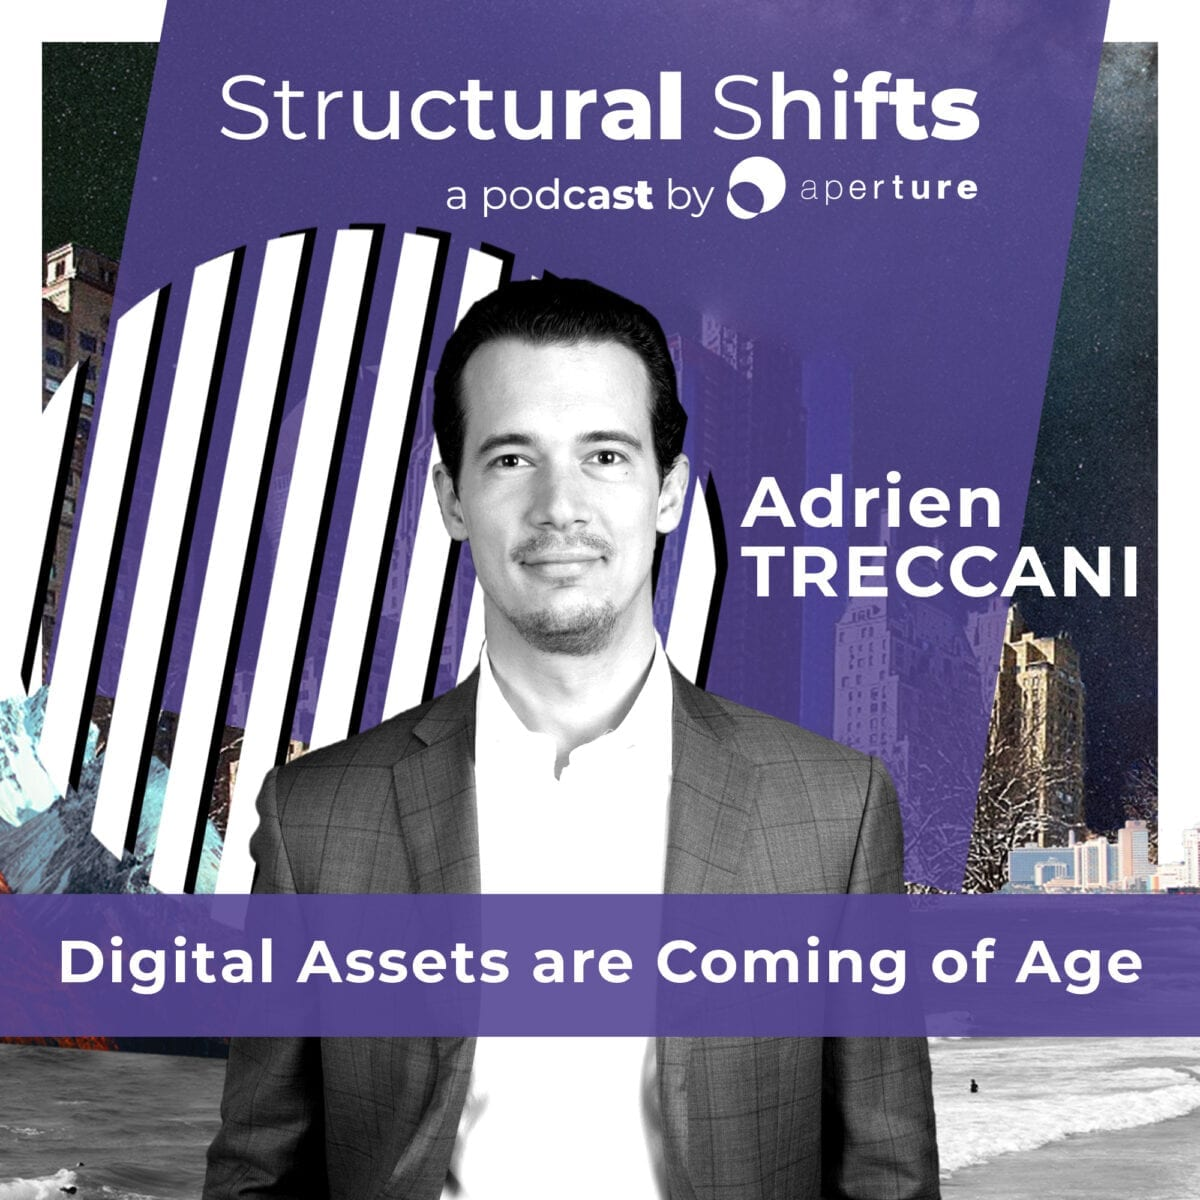 Digital Assets are Coming of Age (#34)